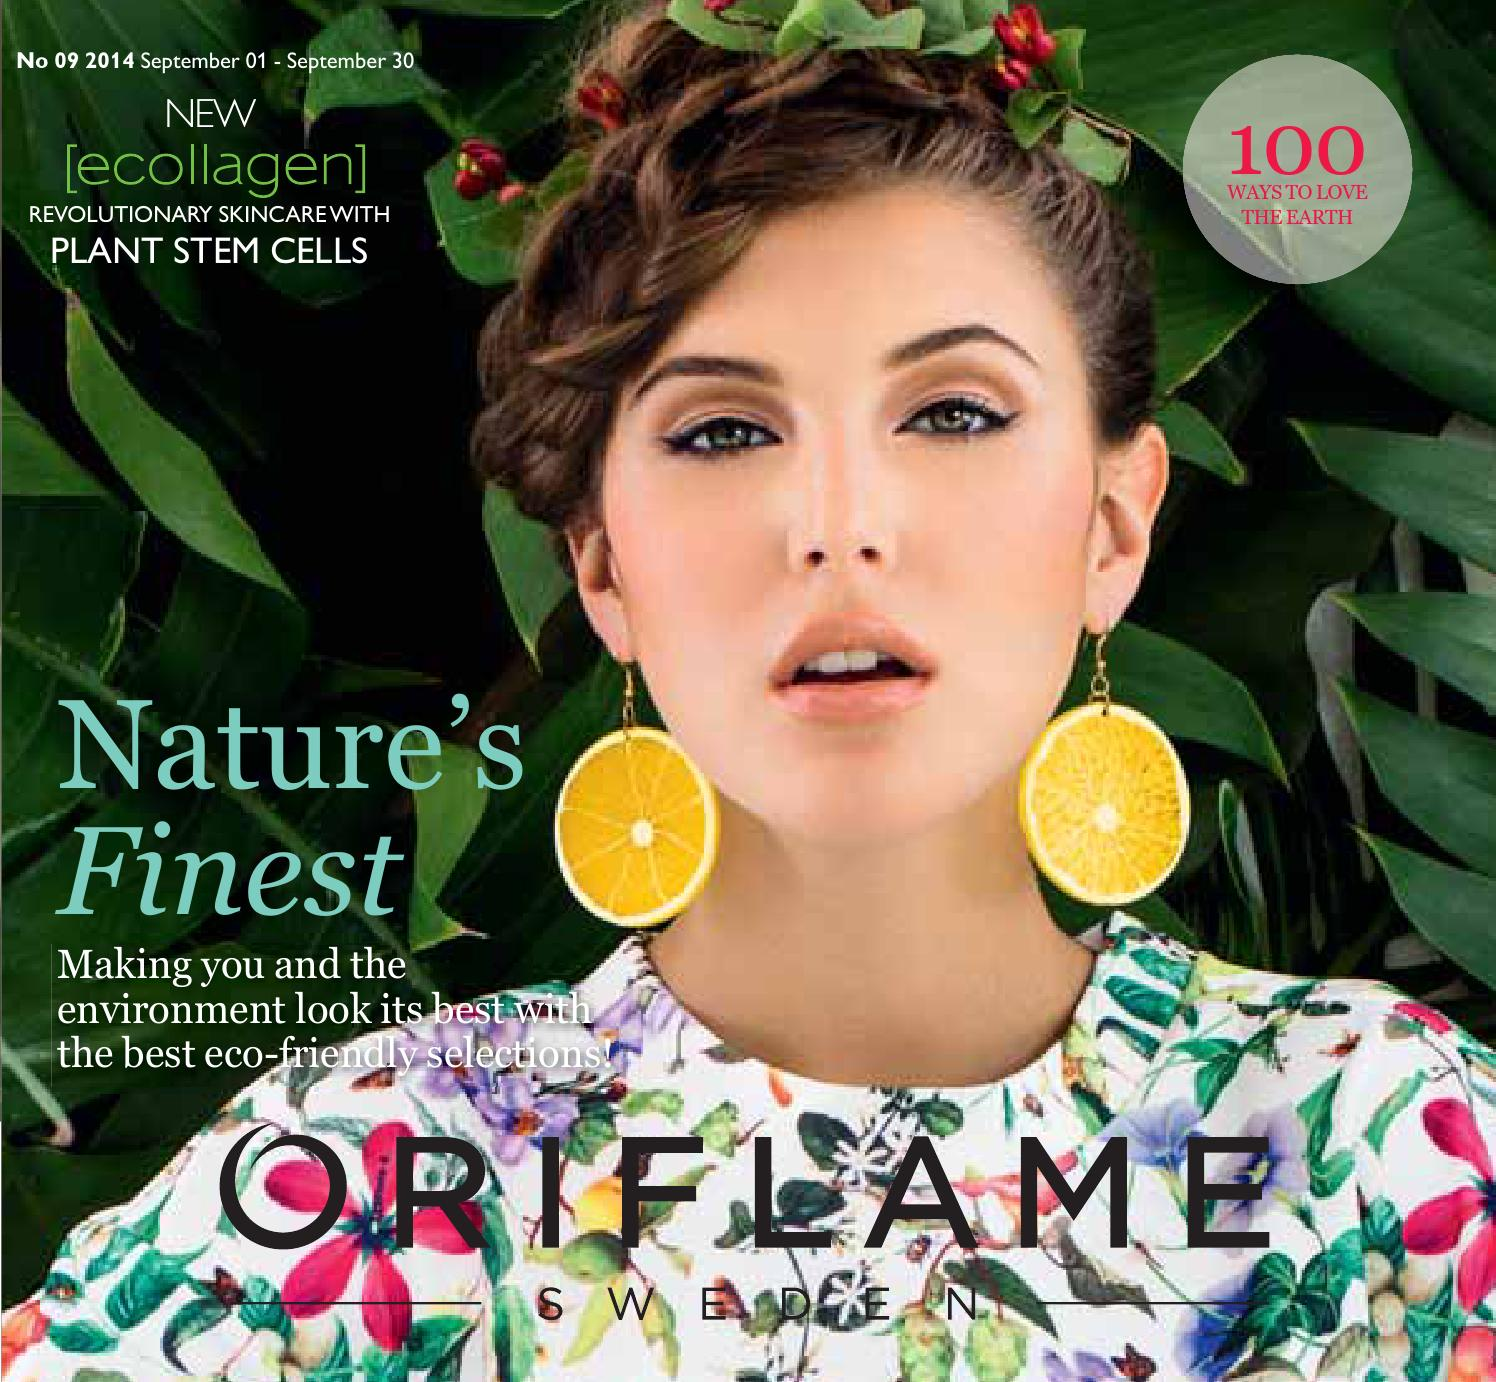 Oriflame India Online No 09 2014 September 01 30 By Applesc Apple Stem Cell 25 Gram Sachets Steam Reprezentant Produse Cosmetice Issuu